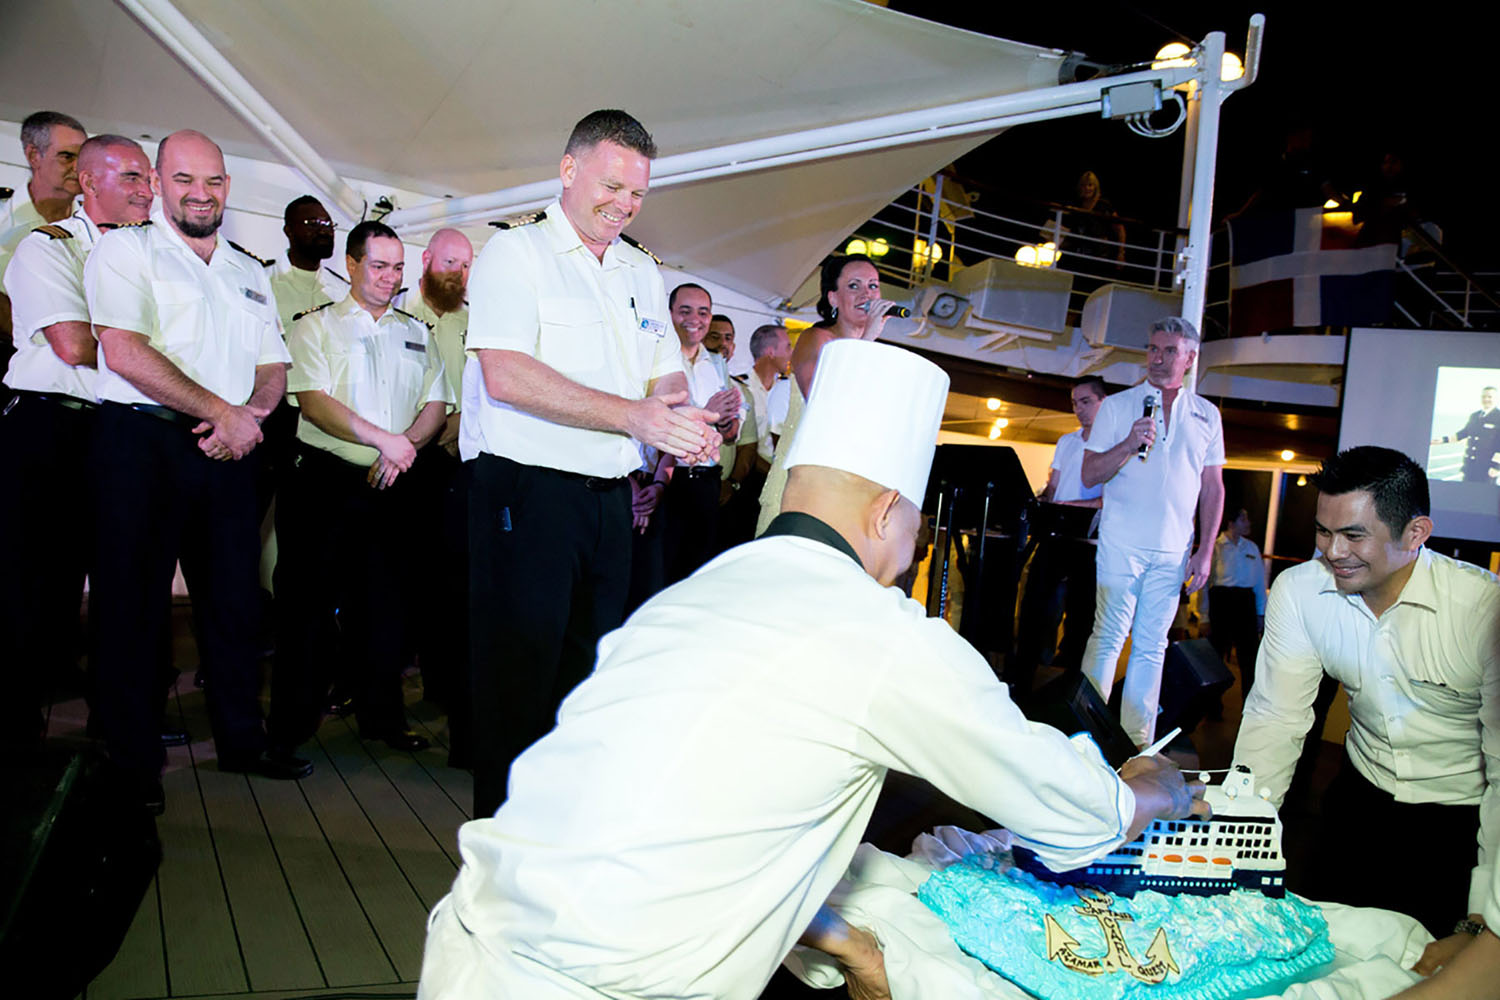 Cutting a cake in Captain Carl's honor onboard the Azamara Quest cruise ship.